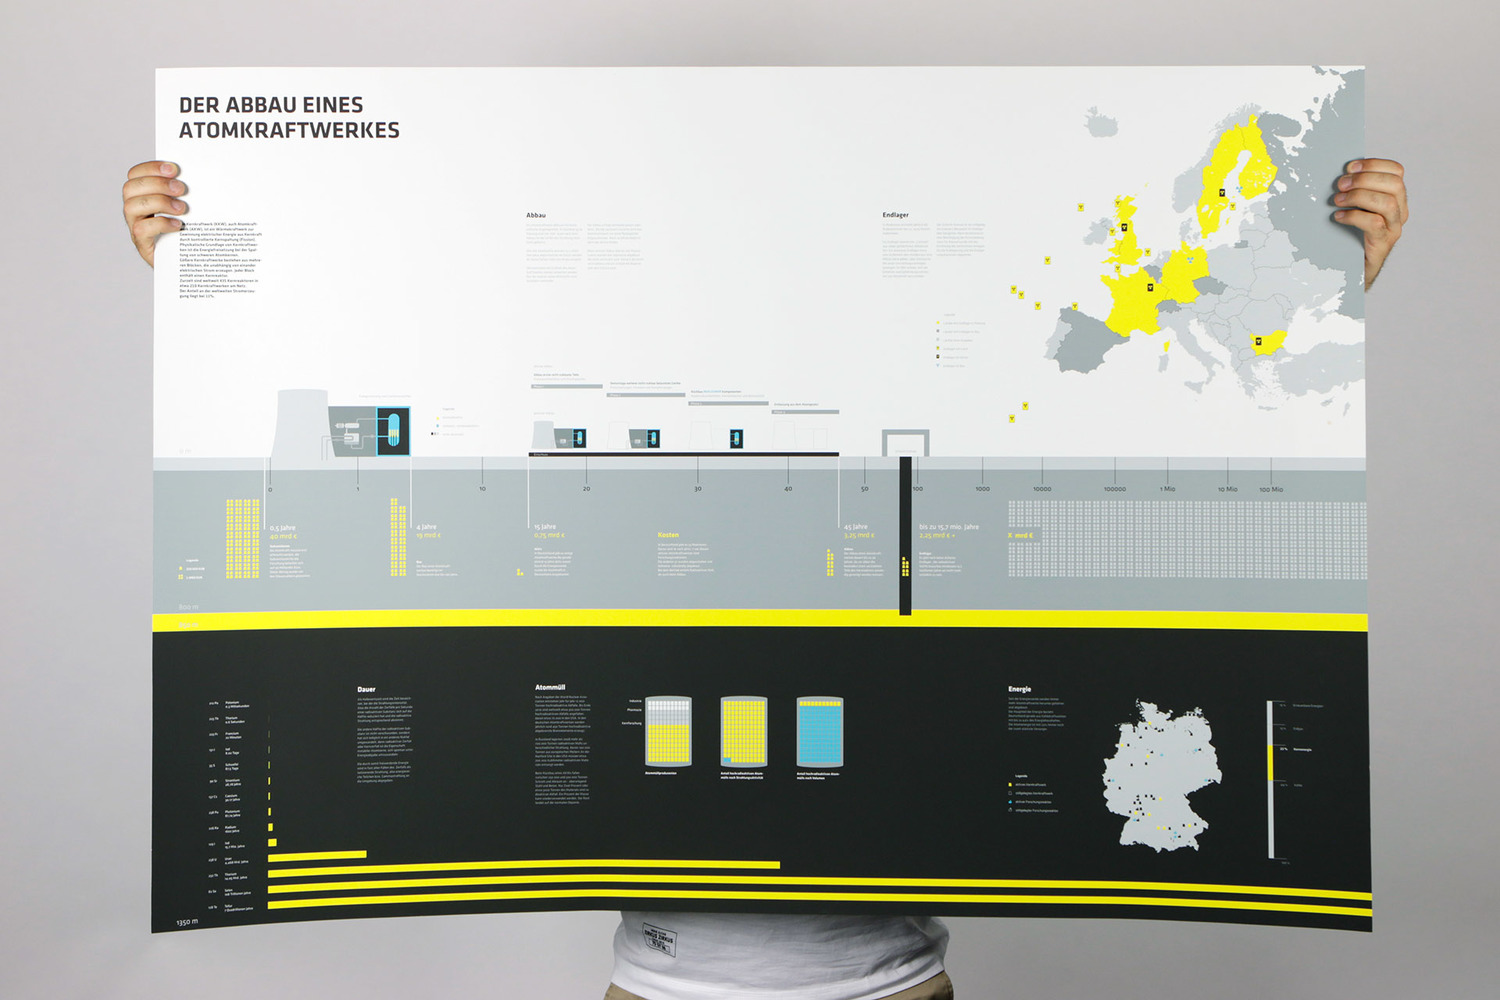 Nuclear Power Plant Jonasvoigtcom Diagram And Explanation Our Goal Was To Explain These Issues With Simple At The Same Time Detailed Illustrationsto Minimize Total Use Of Text In Addition Book